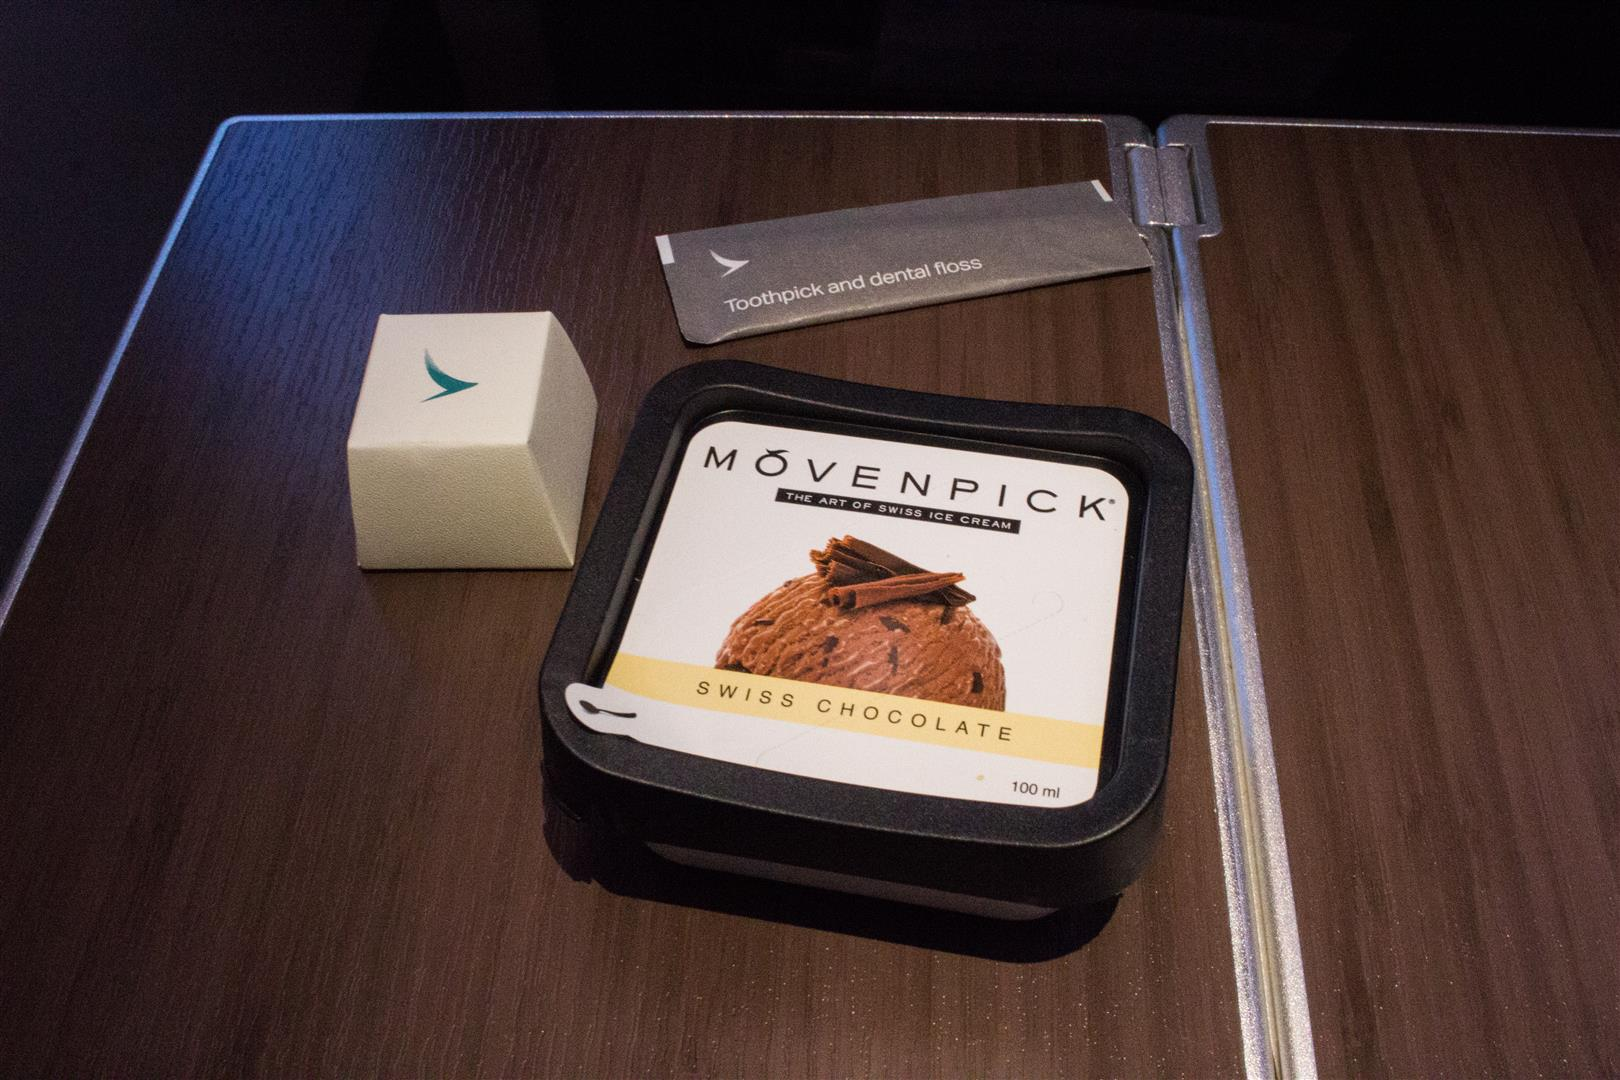 The Dinners usually came with either a chocolate sample from Ghirardelli, or Cathay Pacific's own chocolate, and a toothpick. Ice Cream was also the standard dessert for the dinners as well.